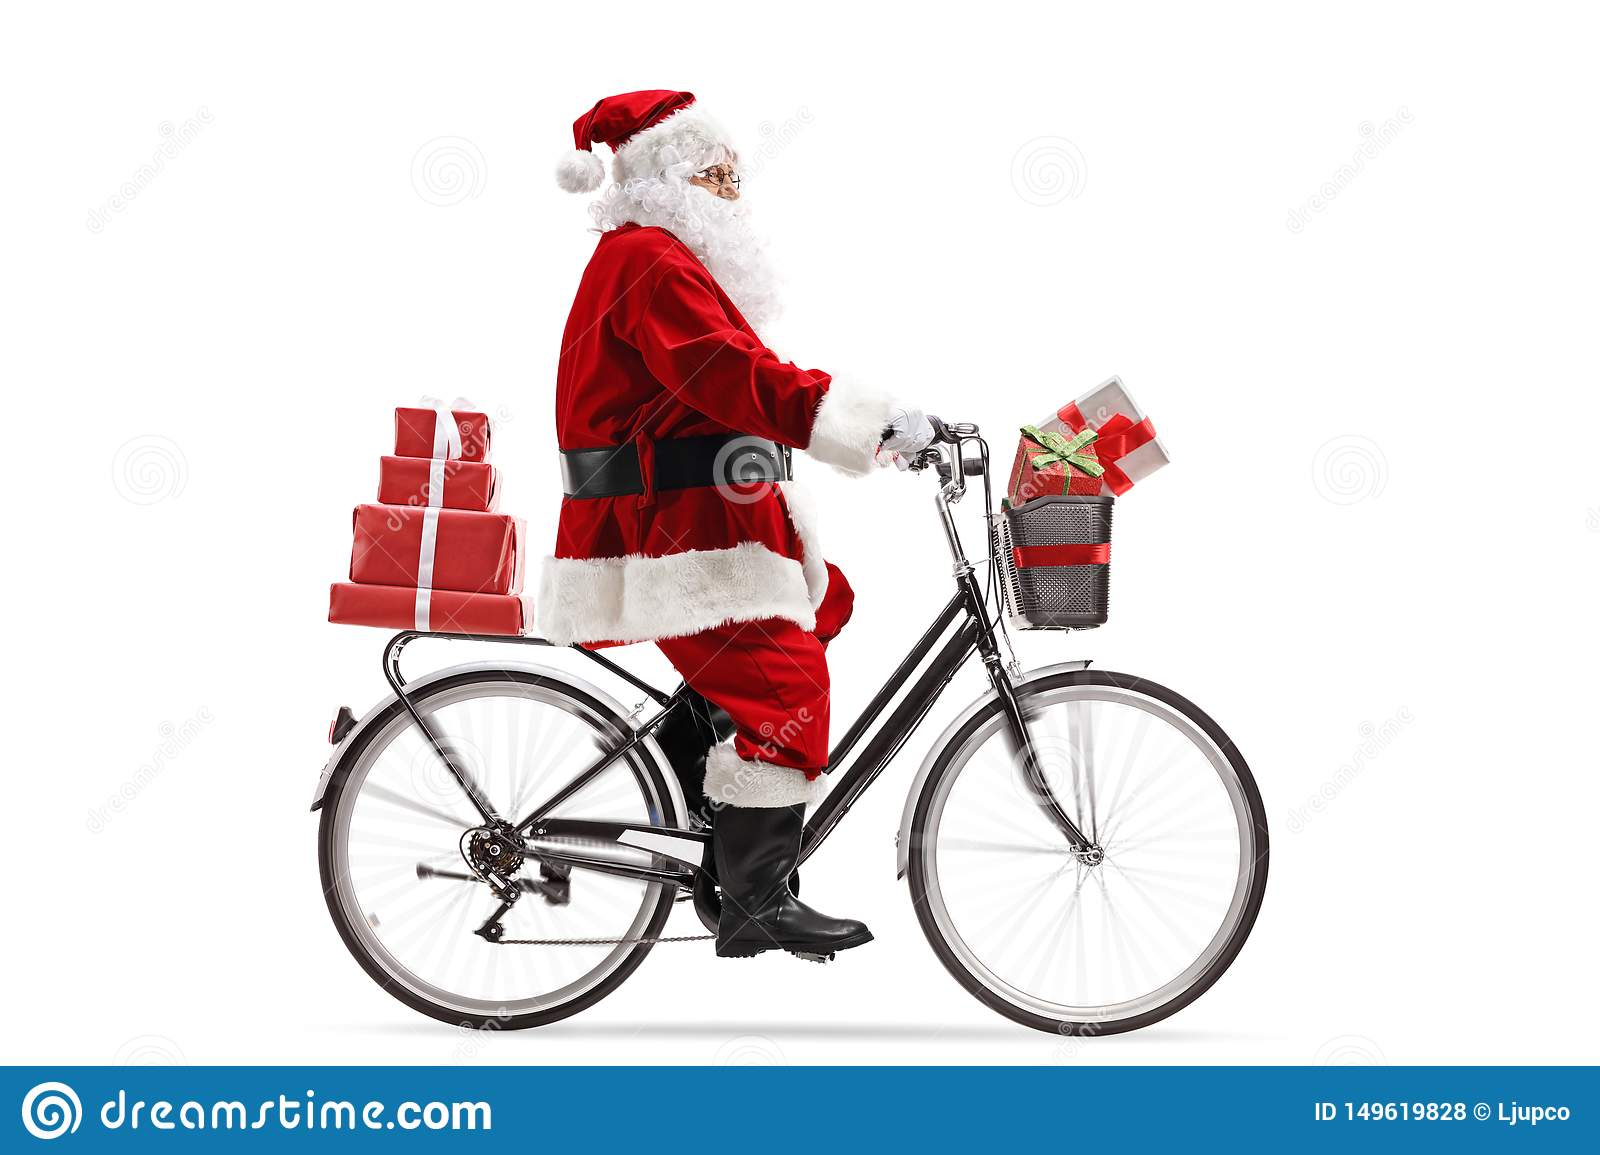 Santa Claus riding a bicycle and carrying presents